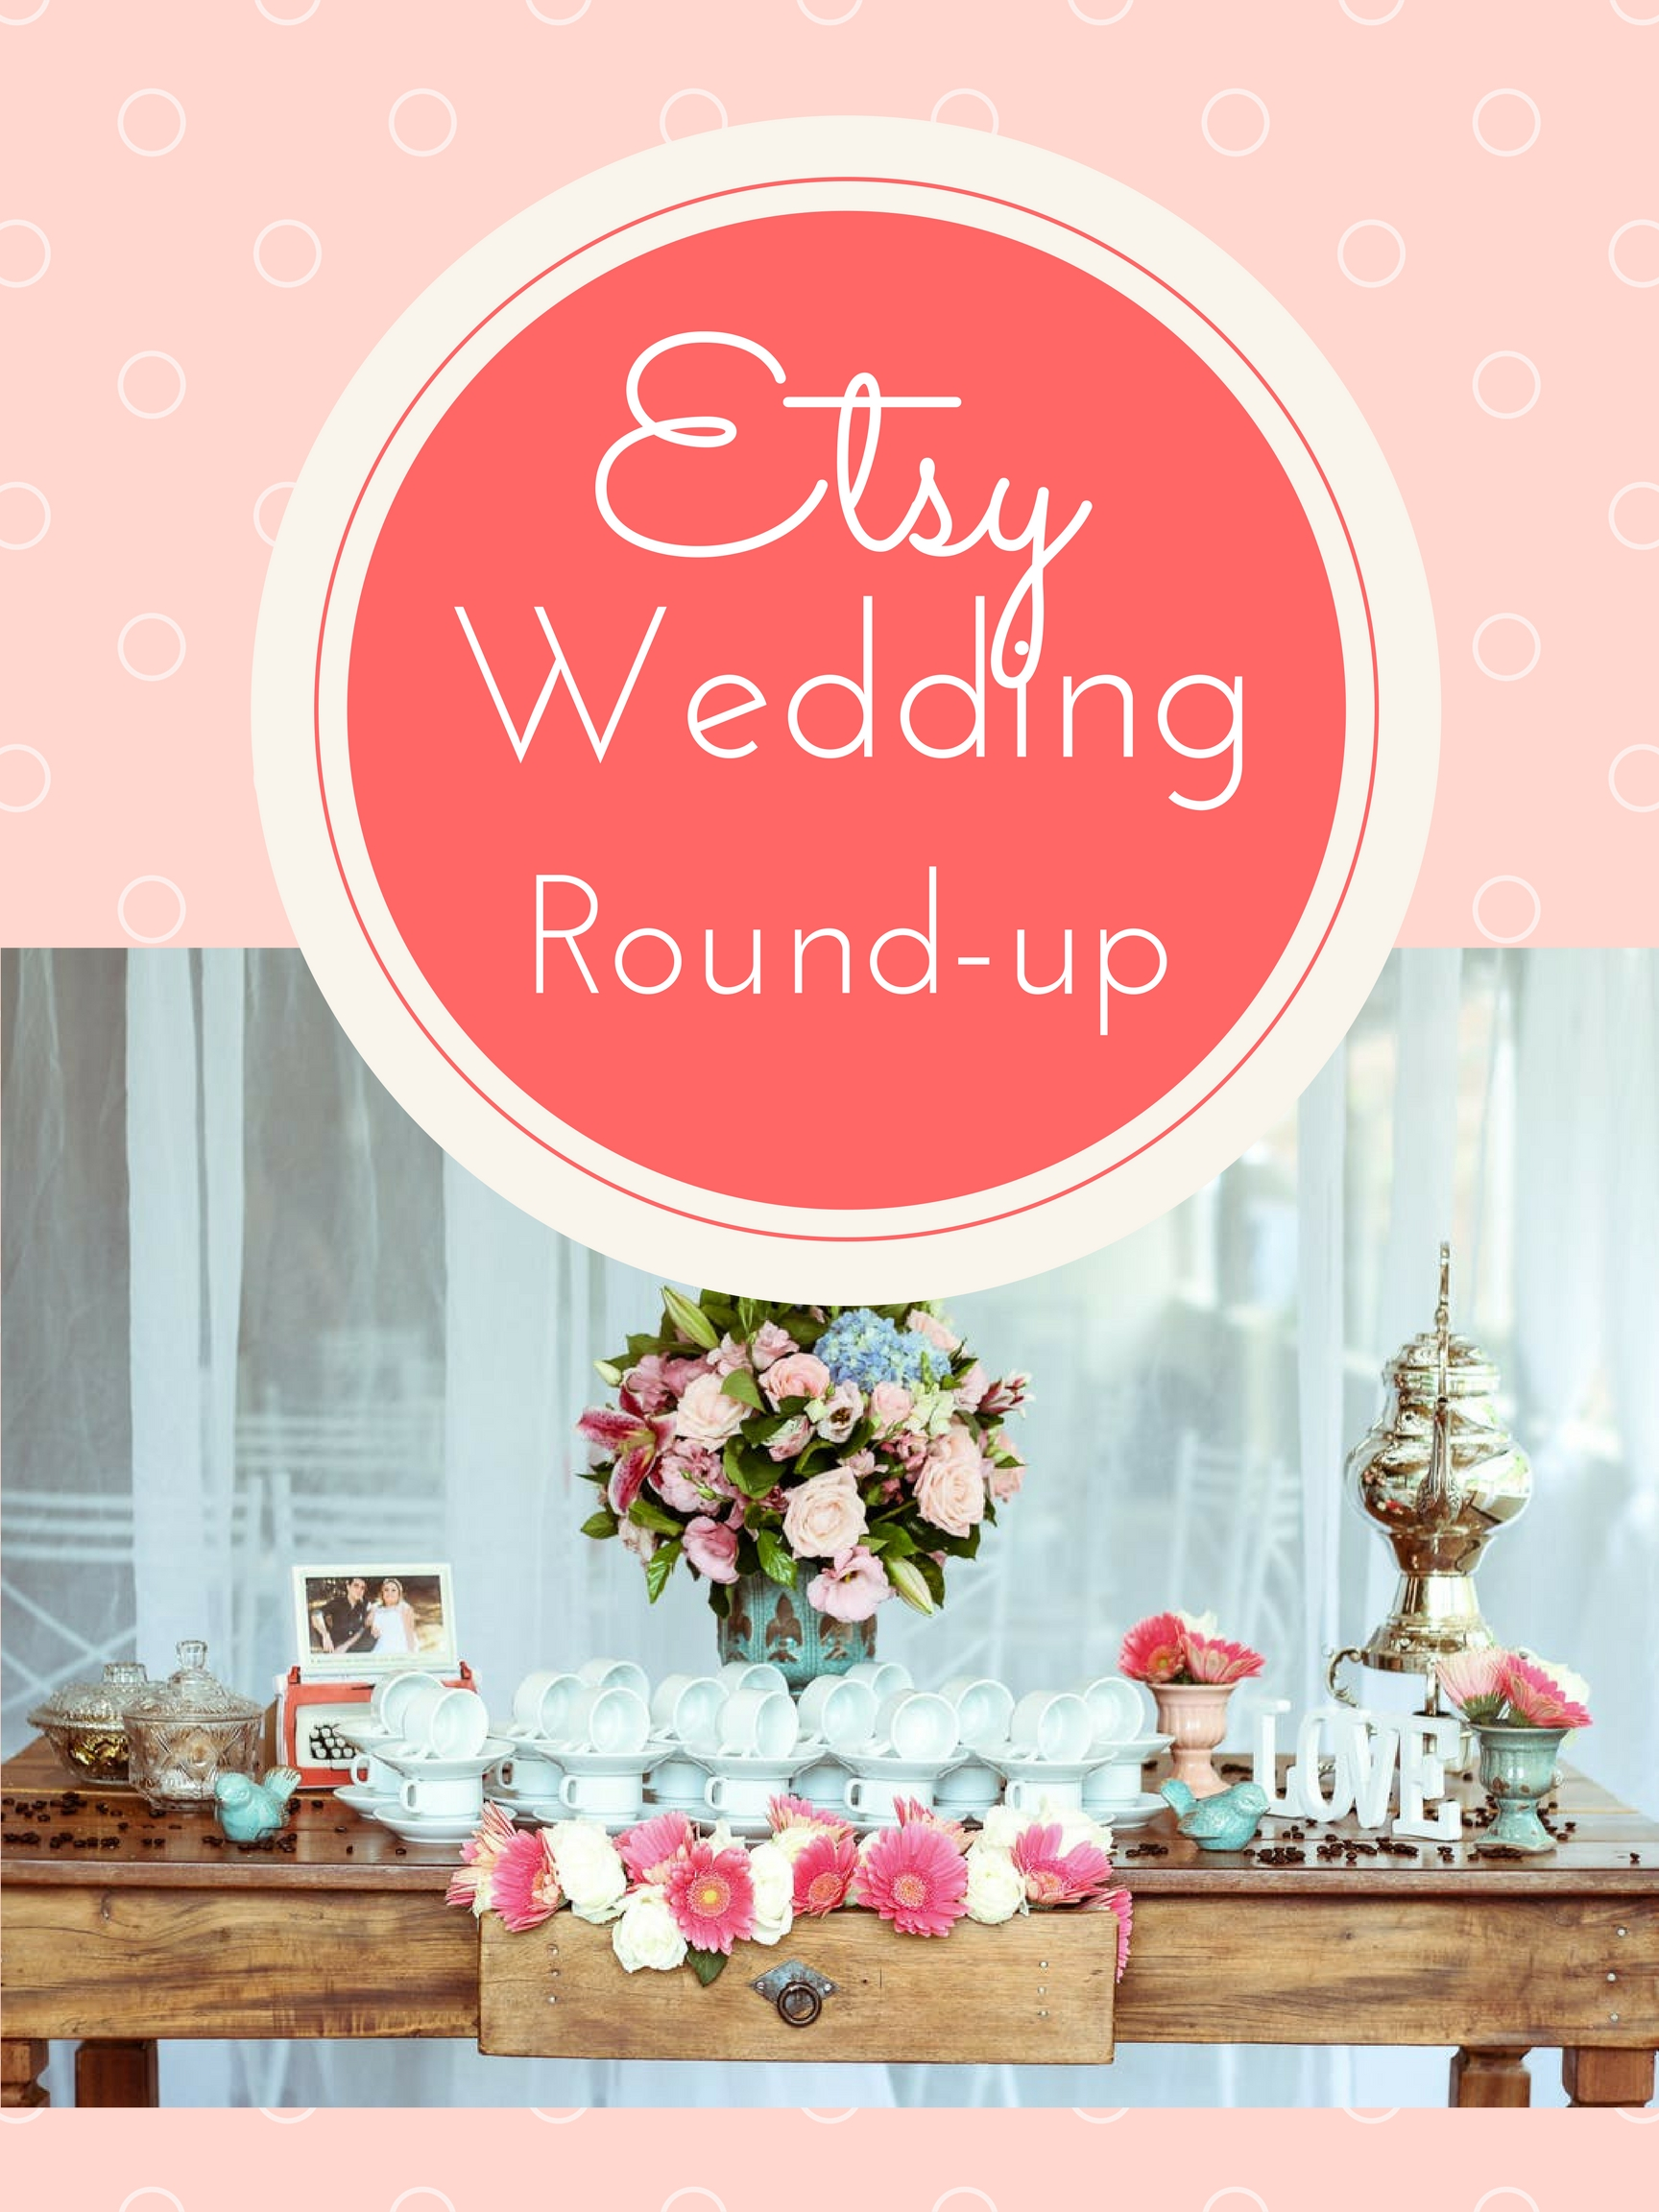 Real Weddings, Inspiration and Planning Advice - Glittery Bride ...